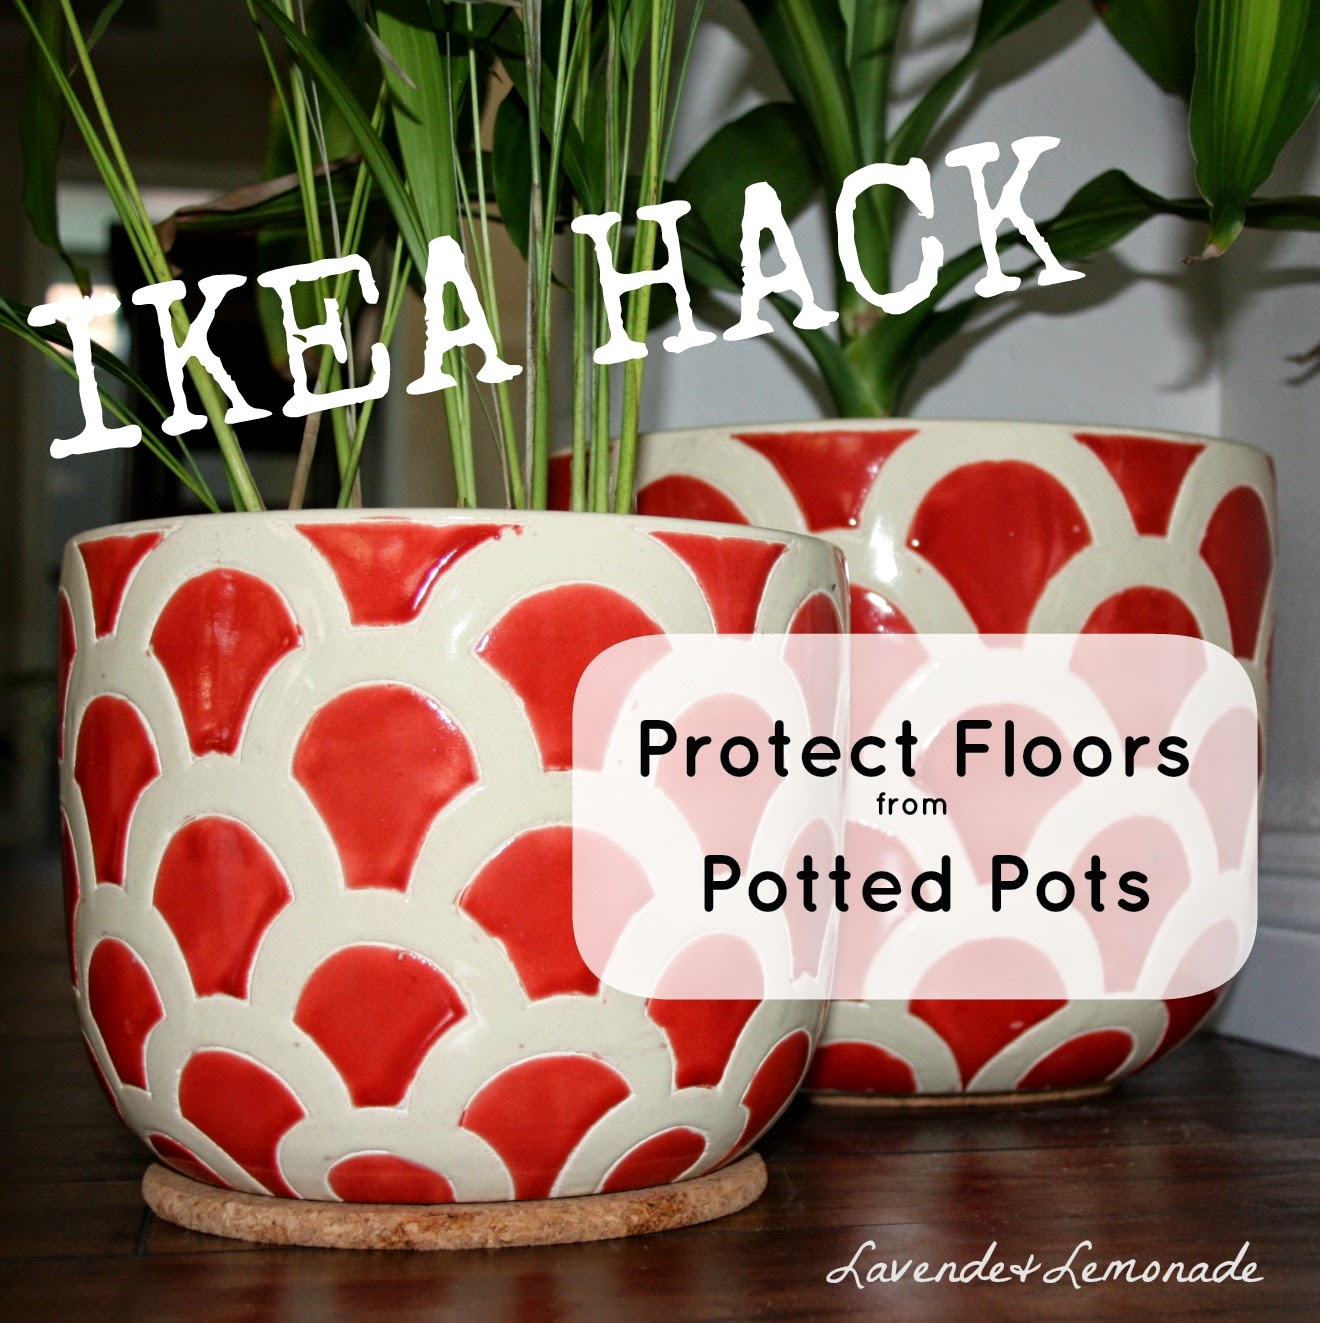 Use cork pads to protect floors from potted plants!